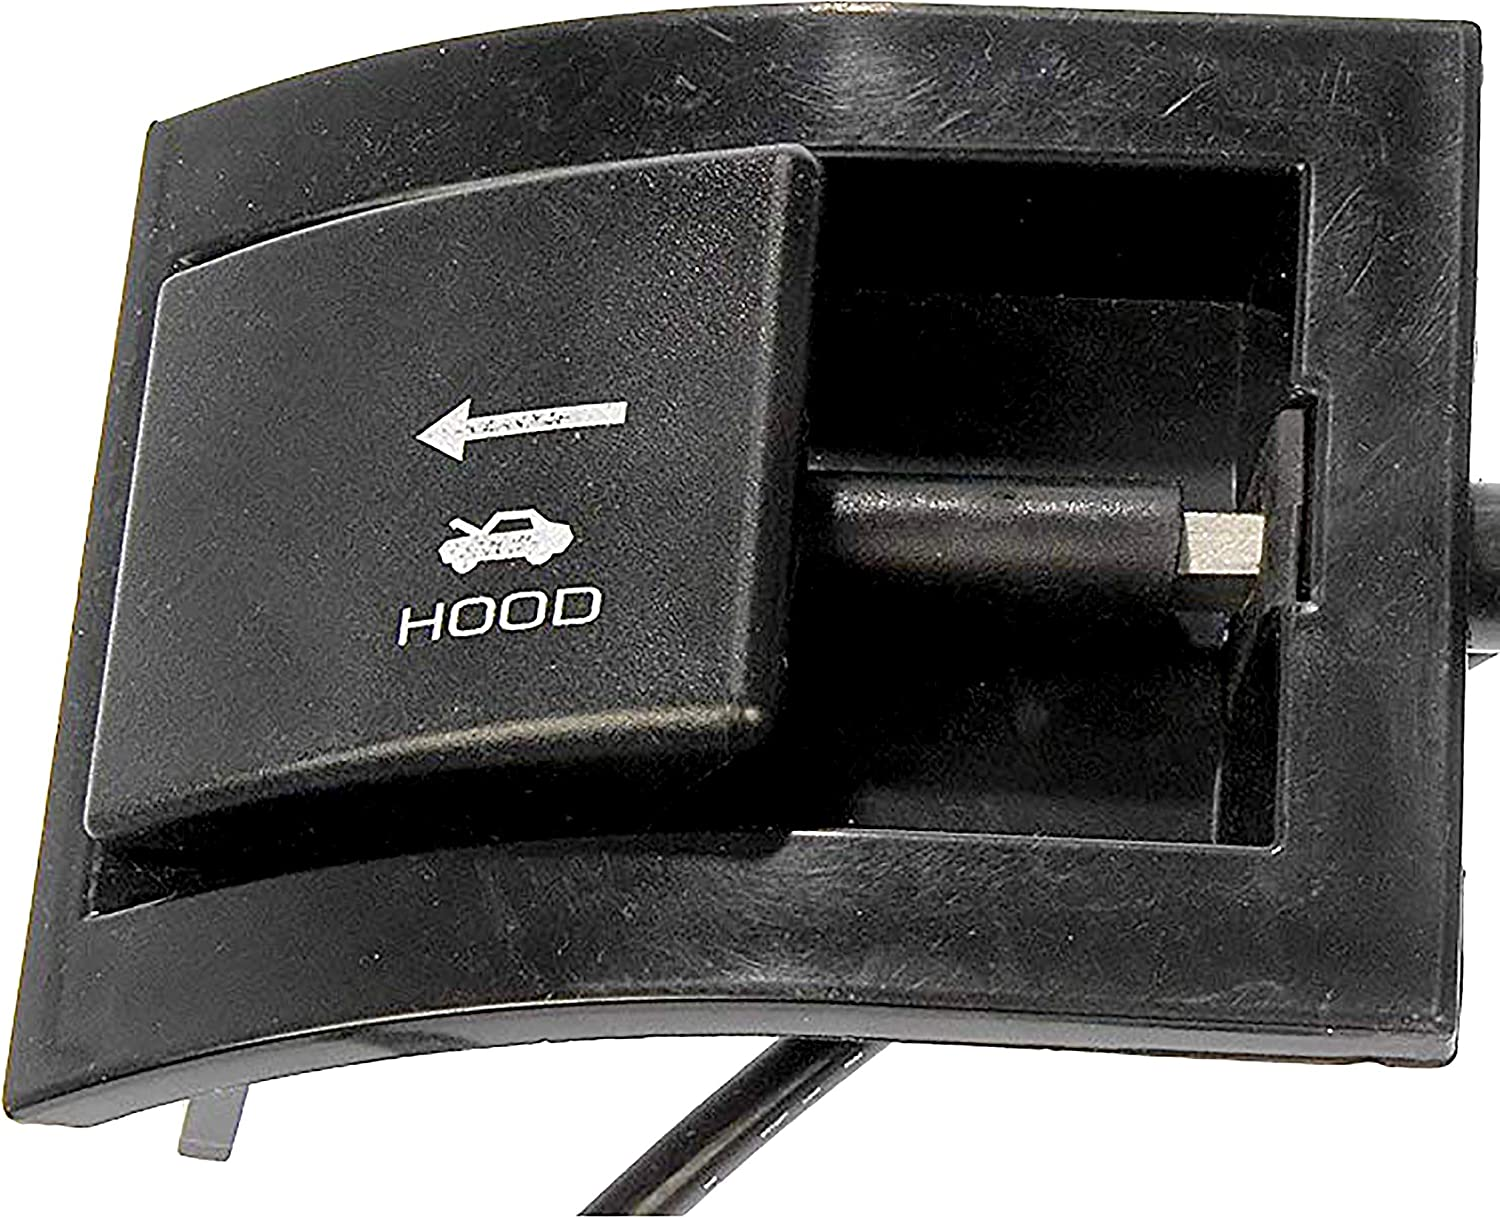 APDTY 023152 Hood Release Cable with Pull Handle For 1987-1991 Ford Bronco F150 F250 F350 Replaces Ford Part #: E7TZ16916A